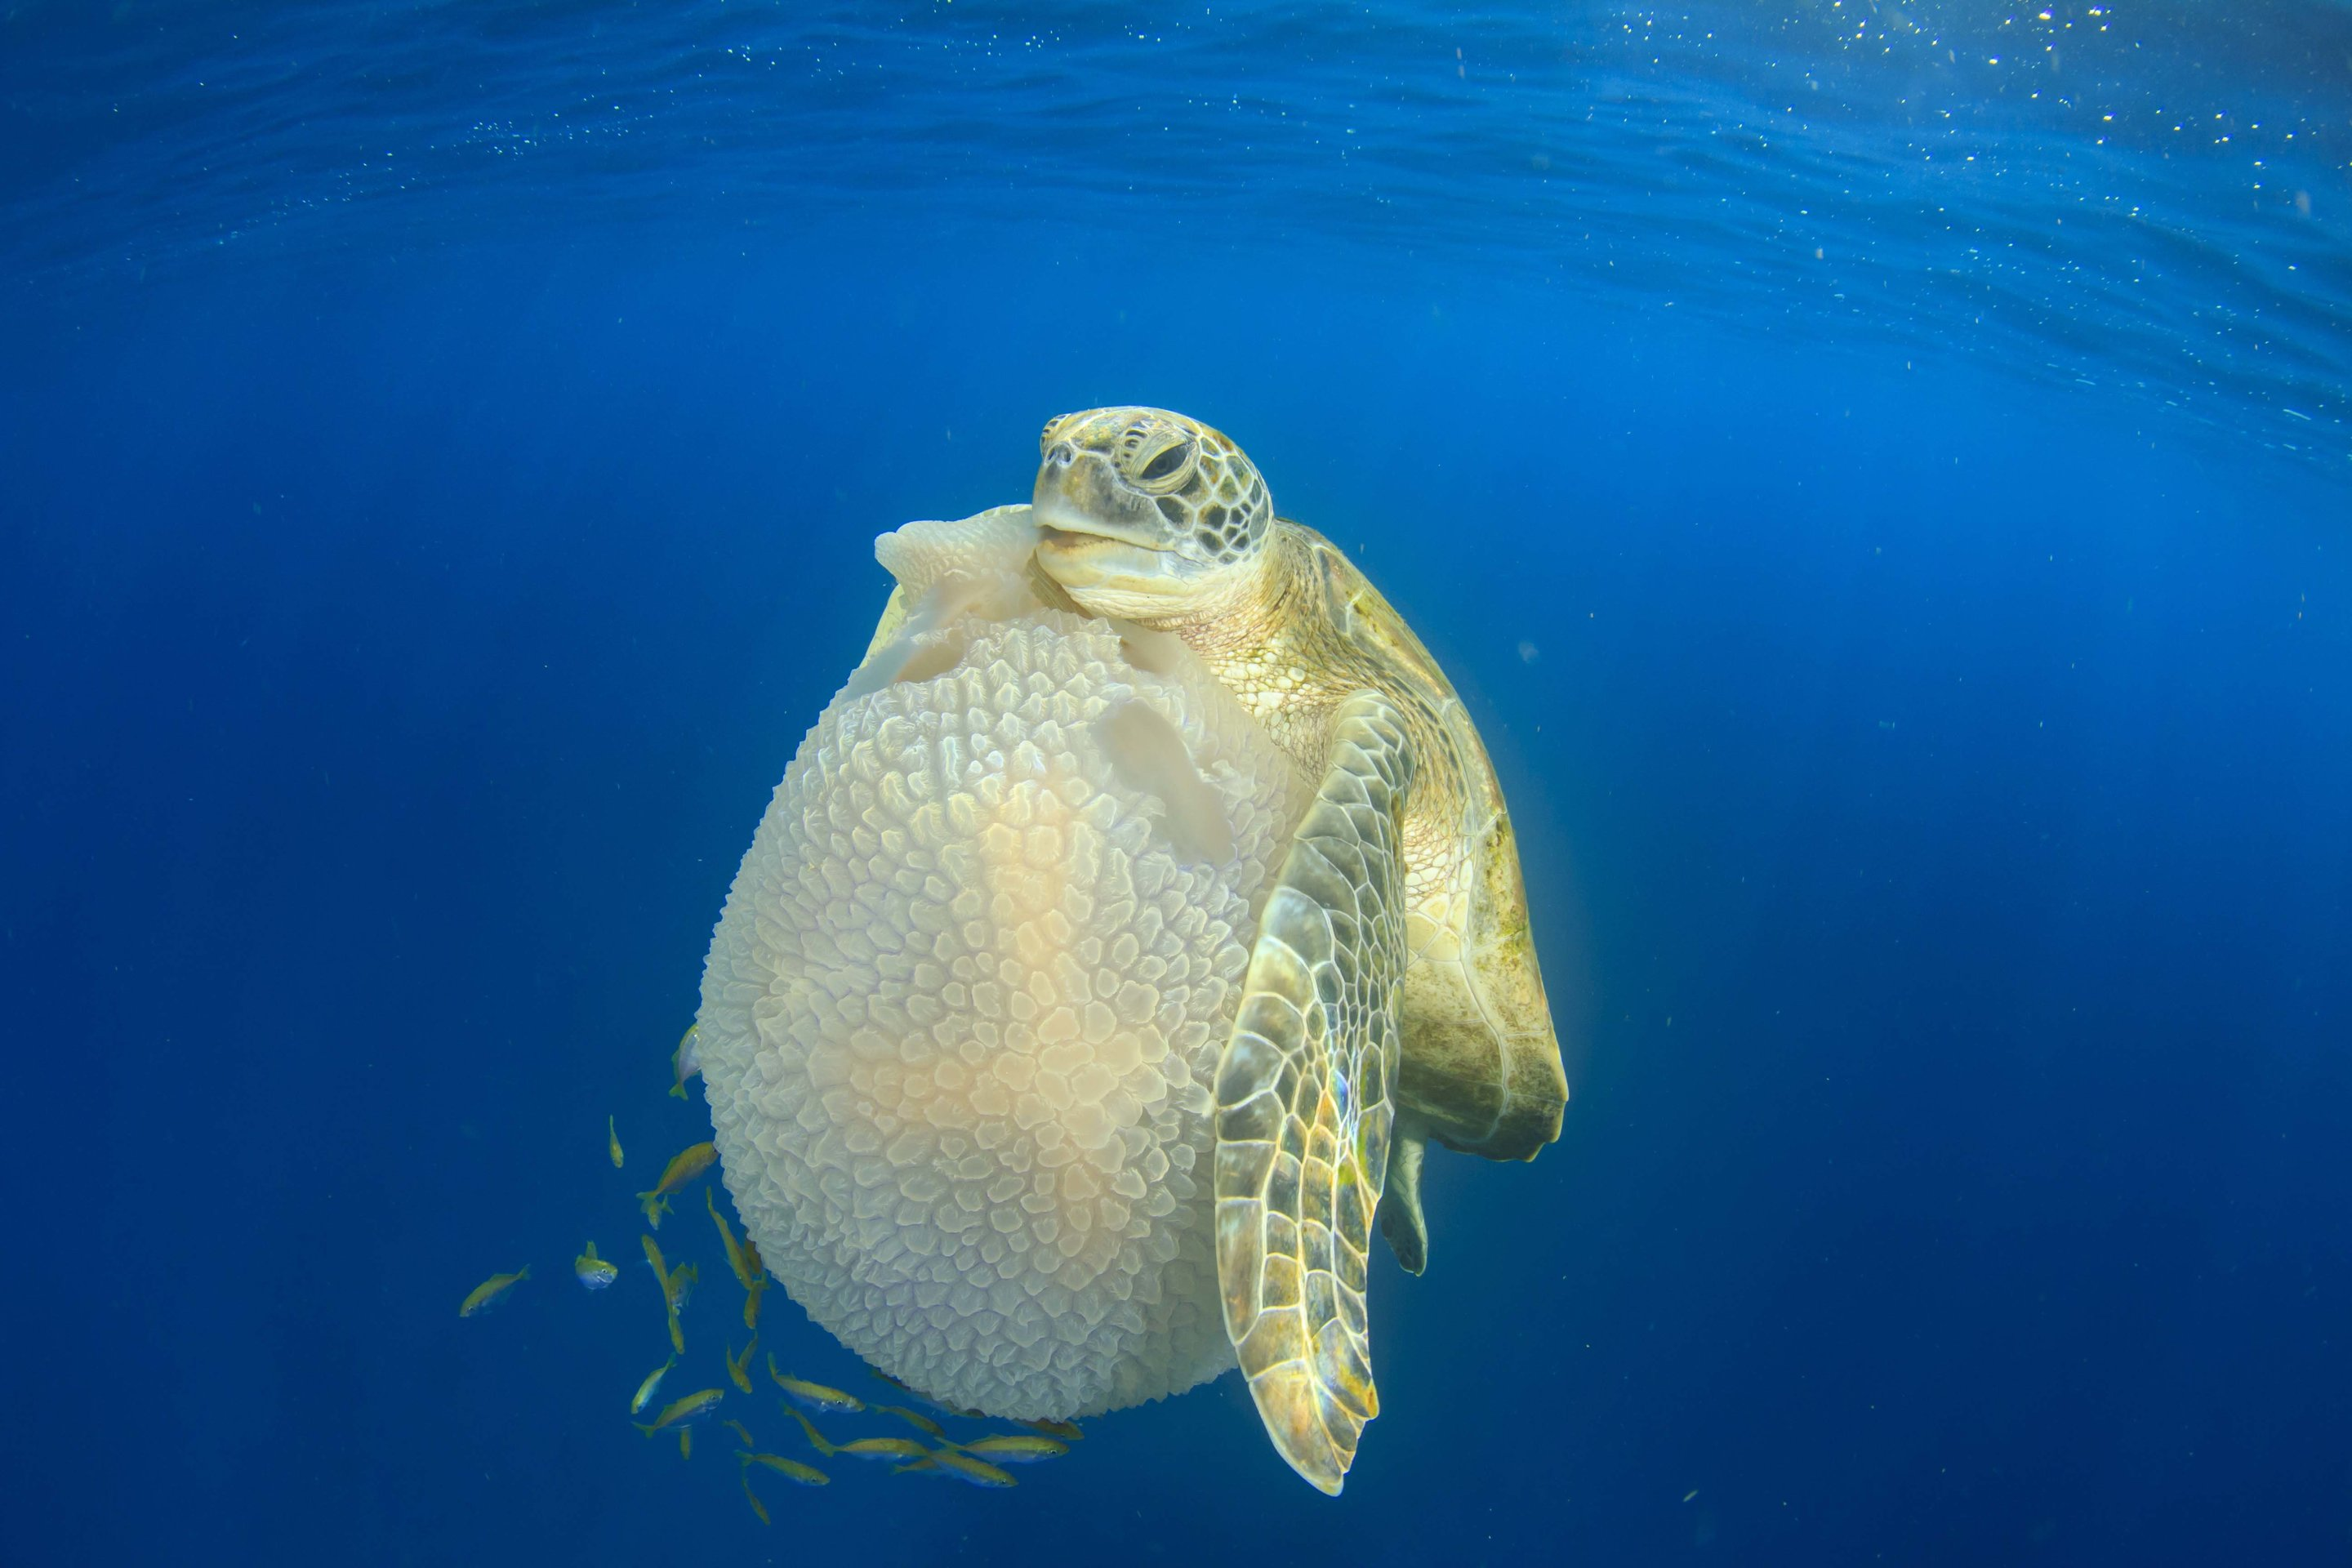 A sea turtle grabbing a jellyfish.